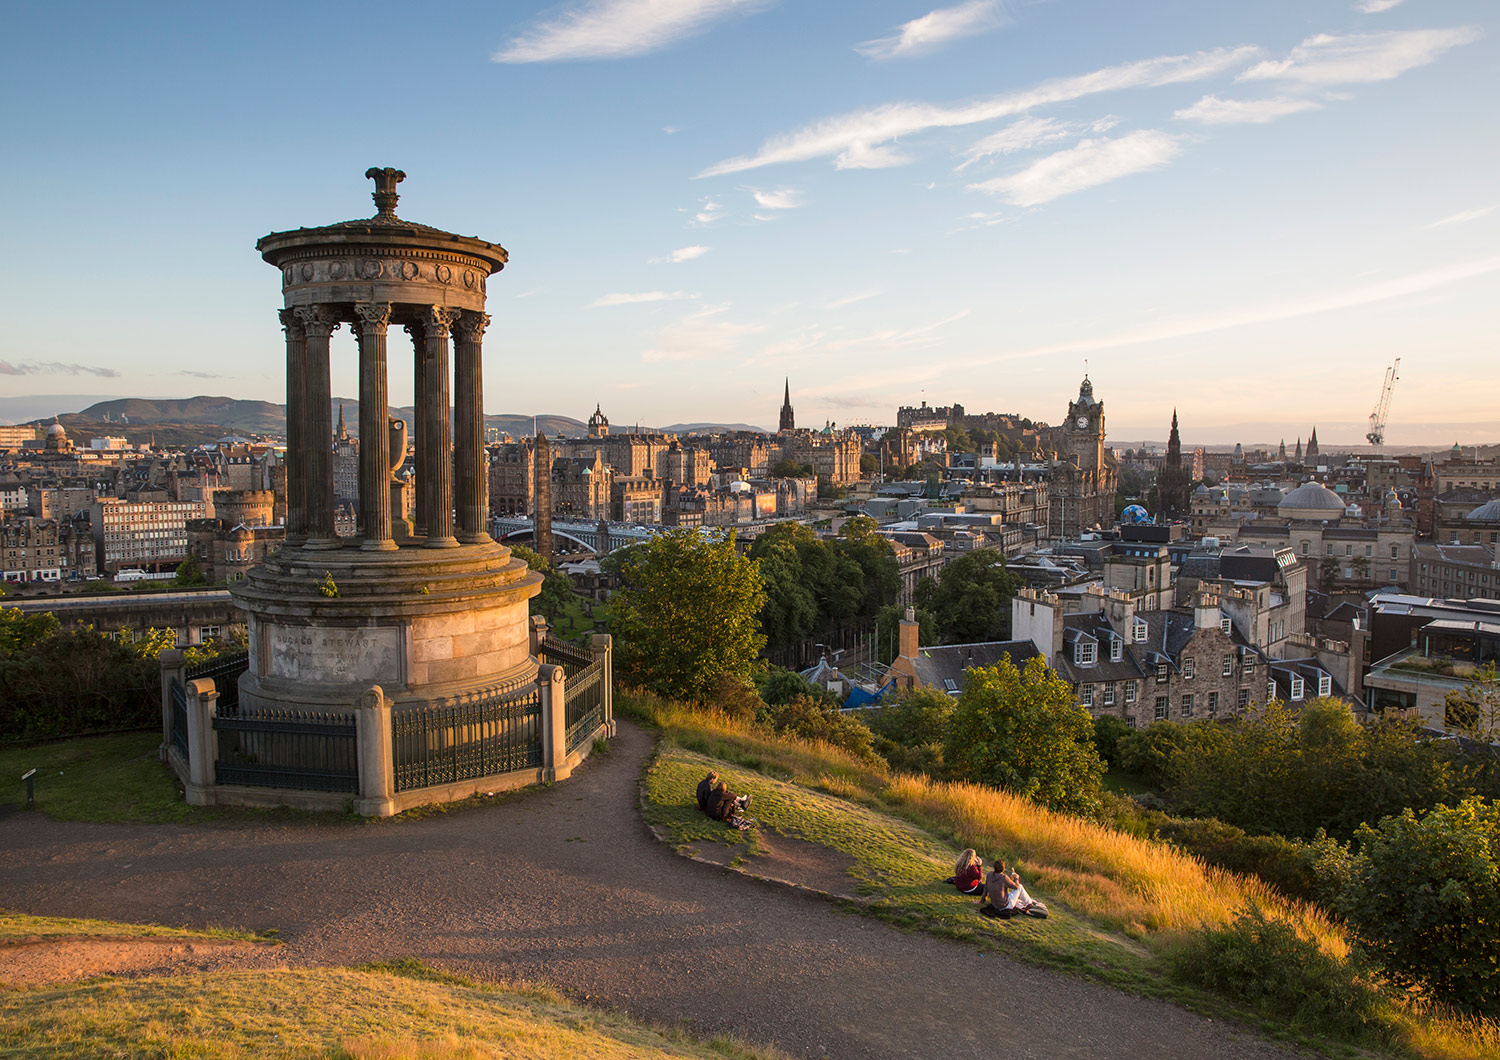 Looking across Edinburgh from Calton hill, with the Dugald Stewart Monument in the forground.